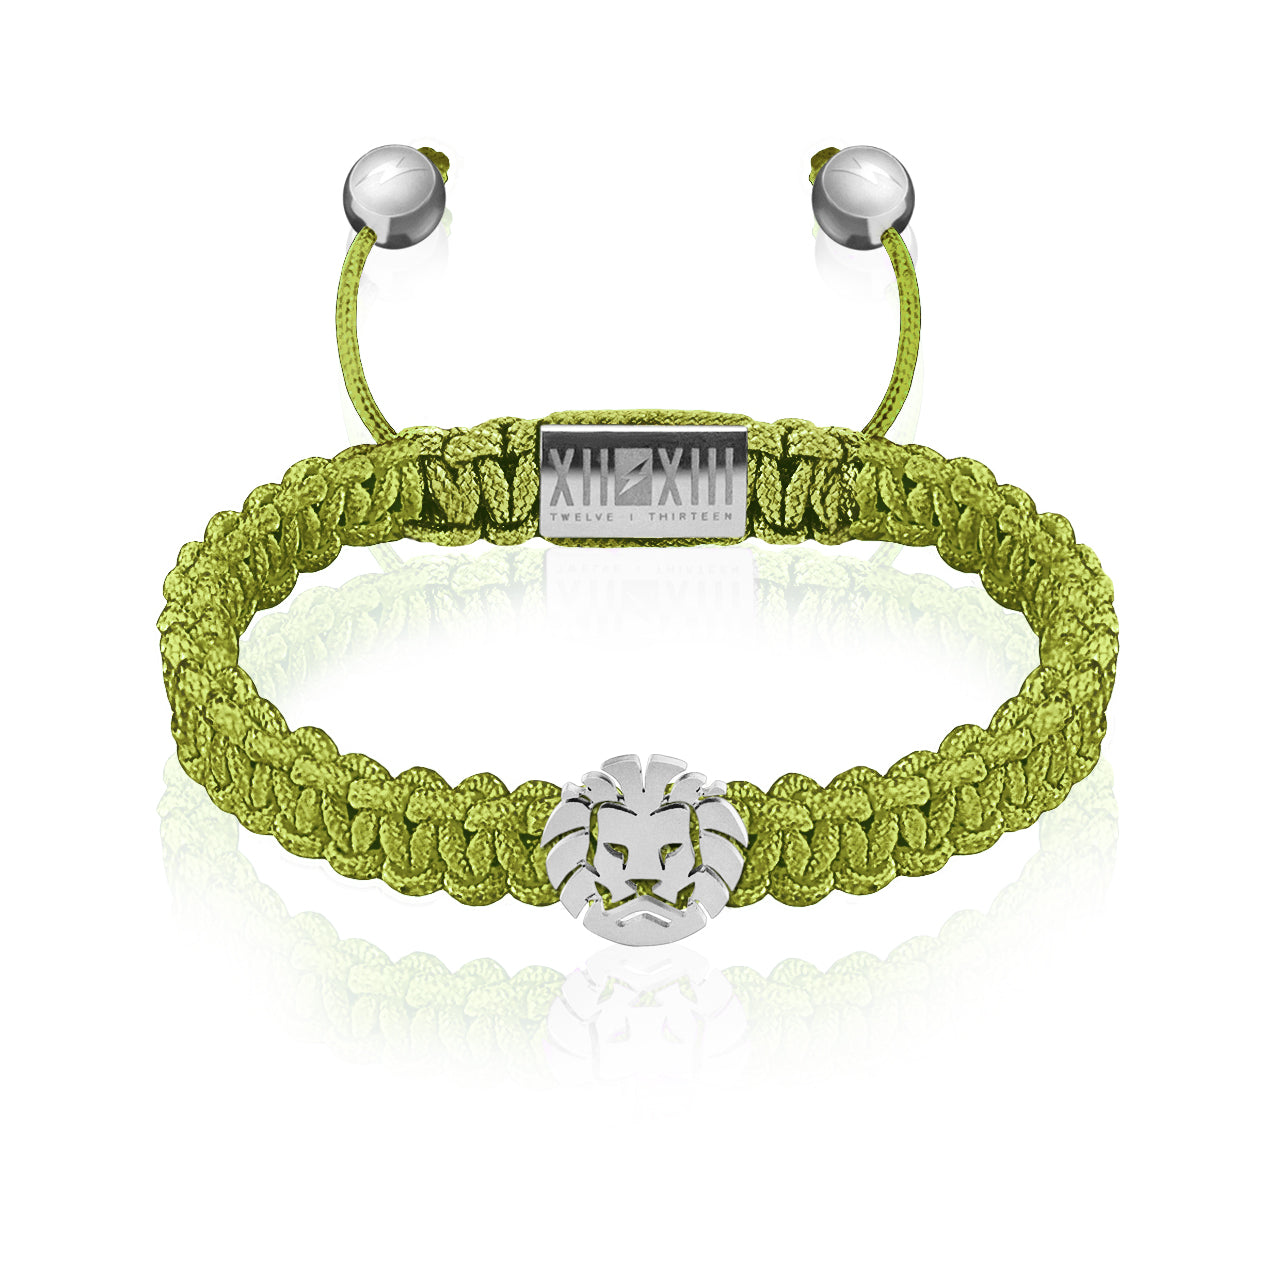 WATCHANISH by Twelve Thirteen Jewelry macramé braided bracelet - Green/Matte Silver